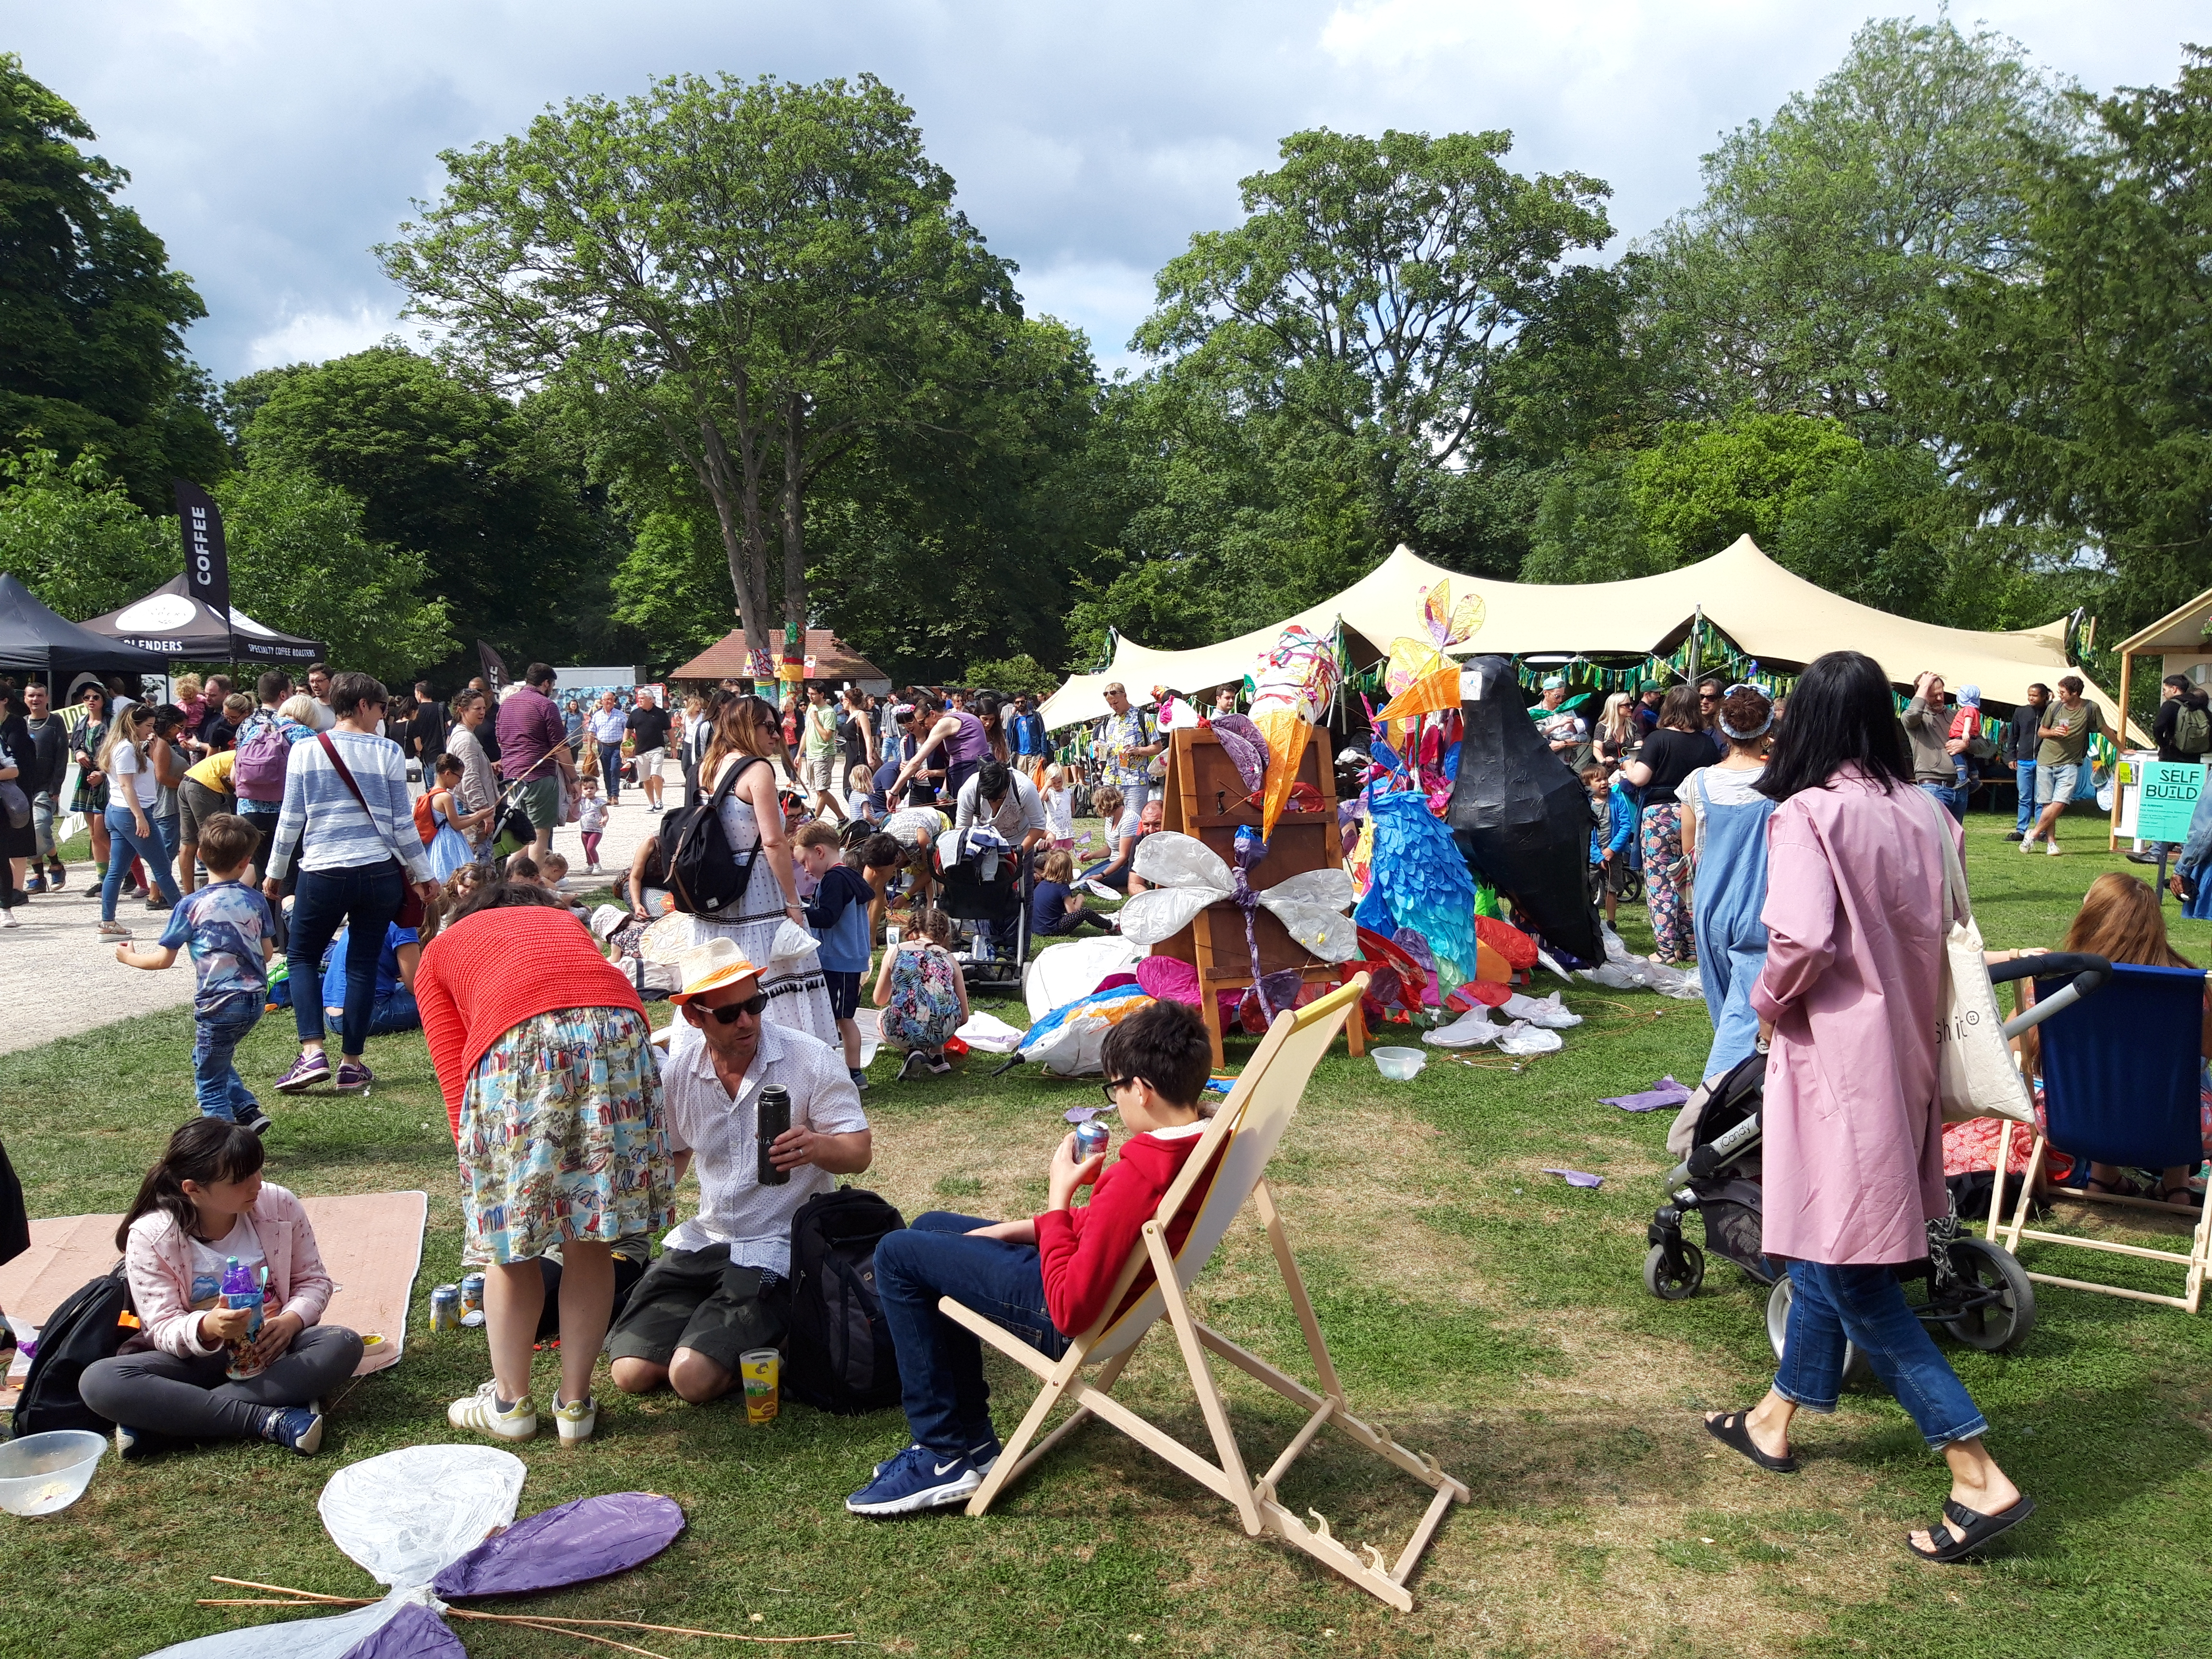 Festivals and events in London's parks